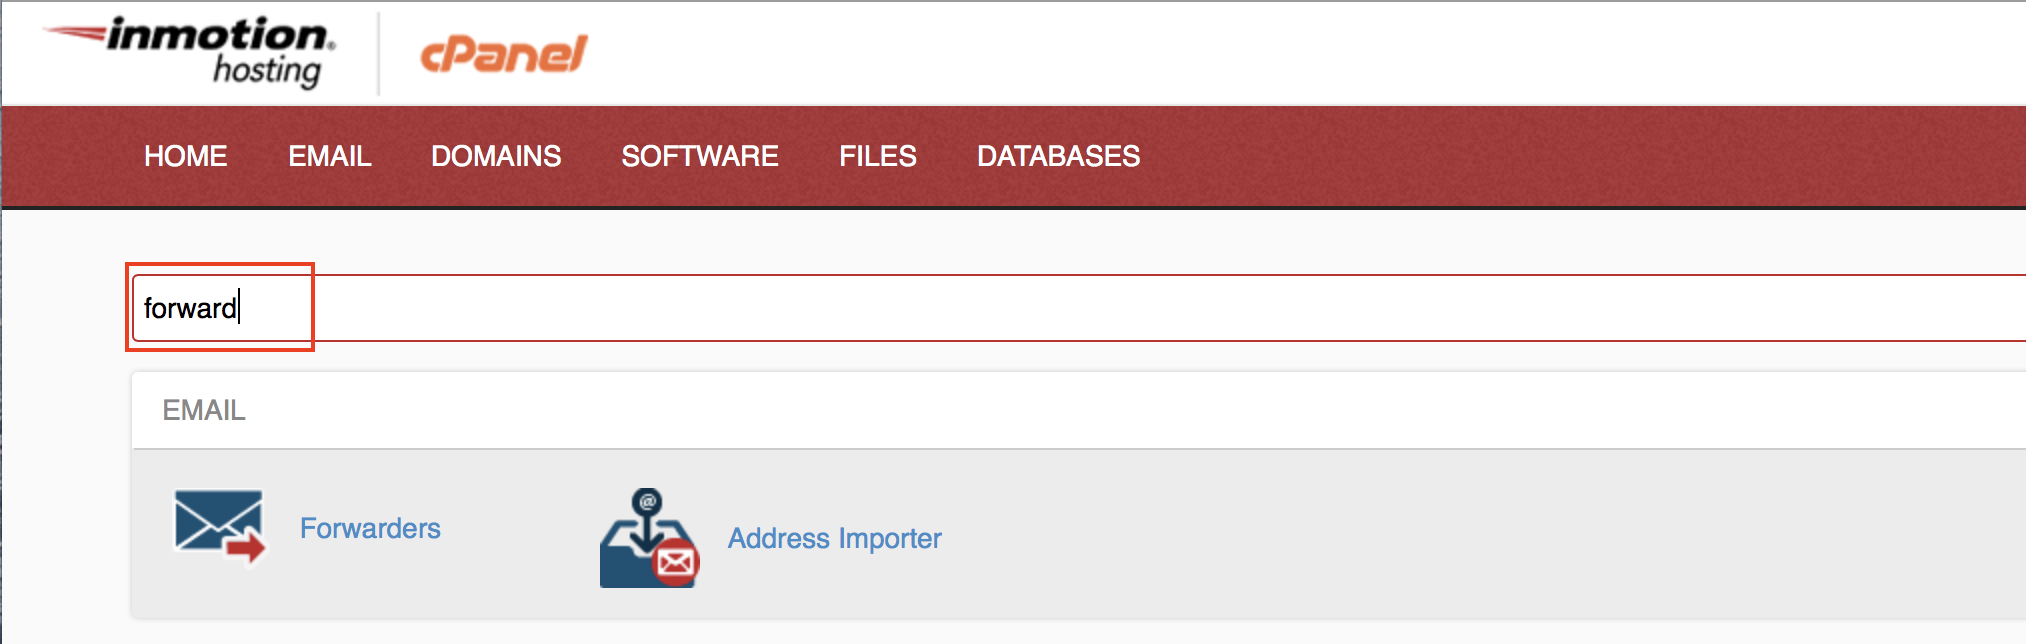 cPanel search bar contains the term 'forward' and is highlighted.